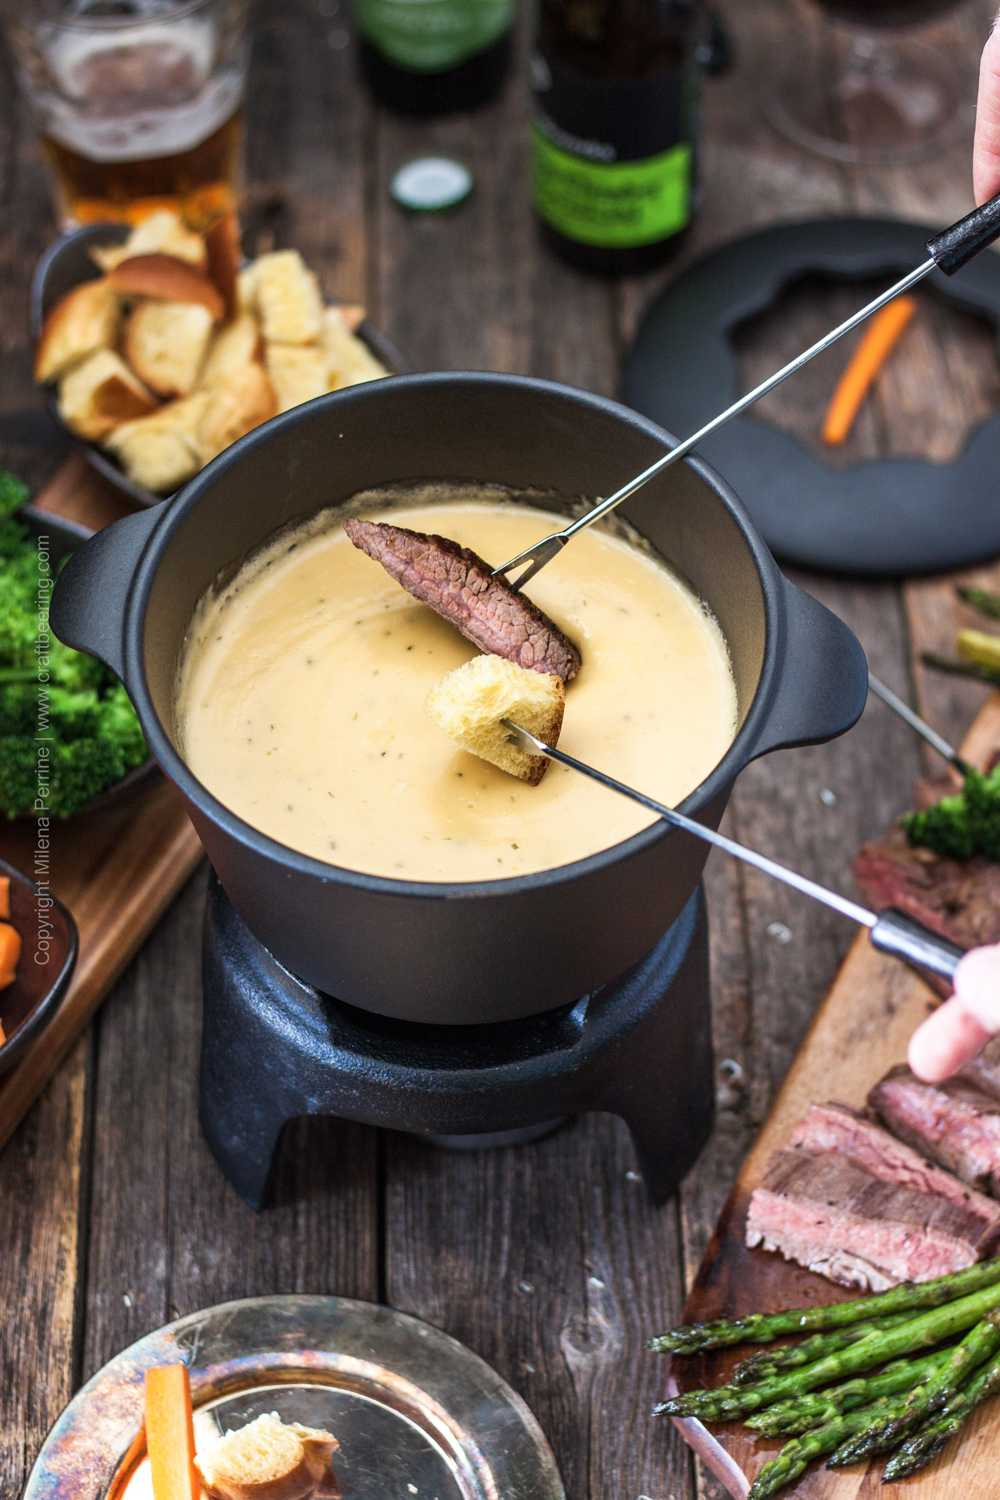 Fondue pot with beer cheese melted to perfection.